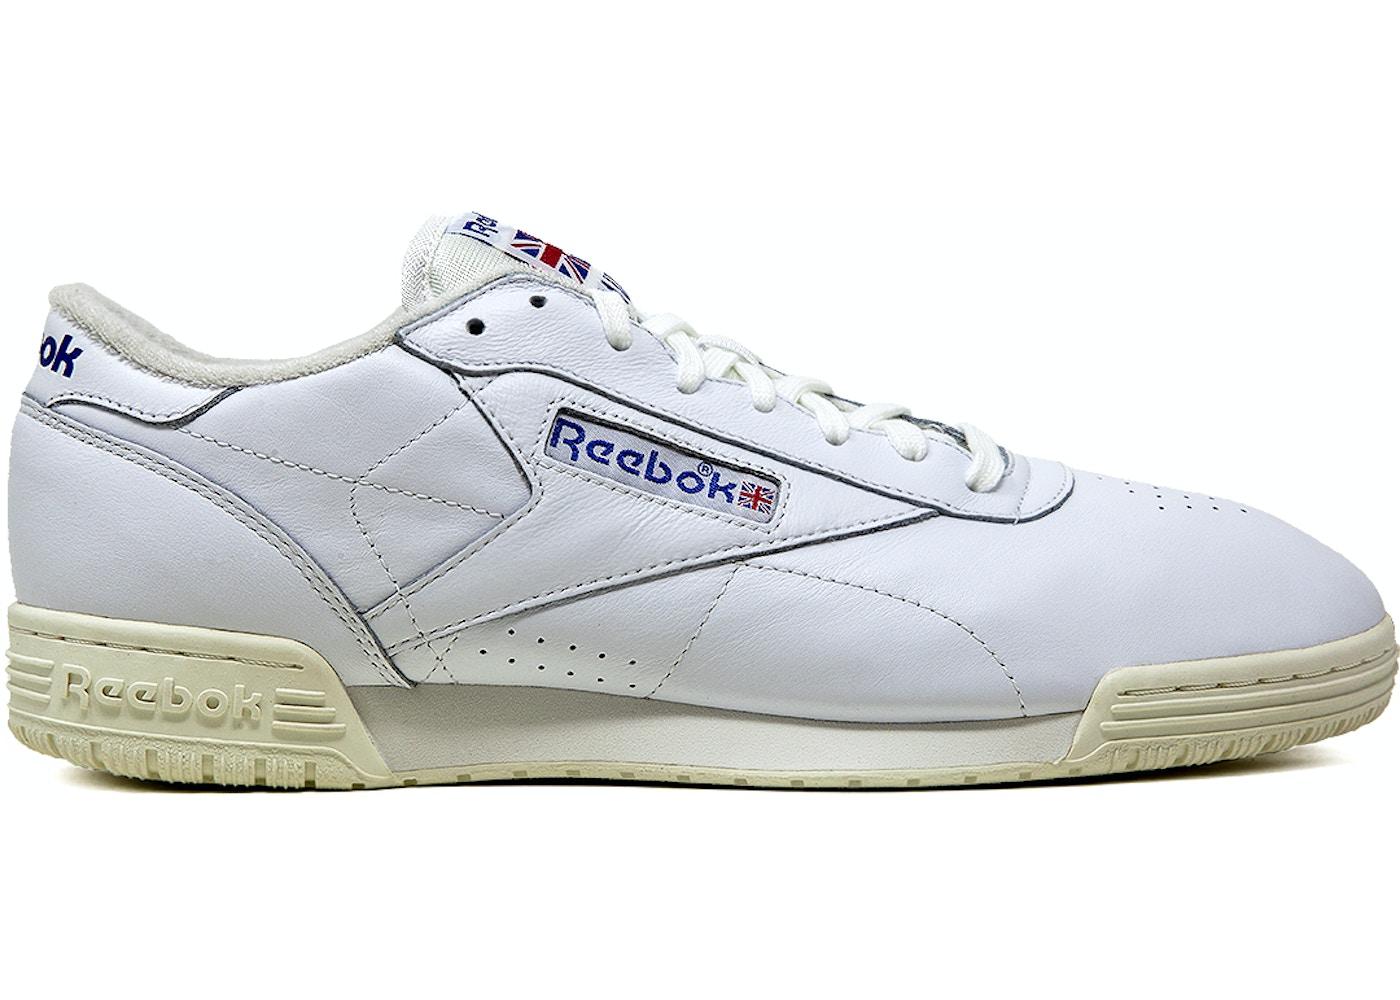 cacbe83a1c5 Reebok Size 7.5 Shoes - Lowest Ask